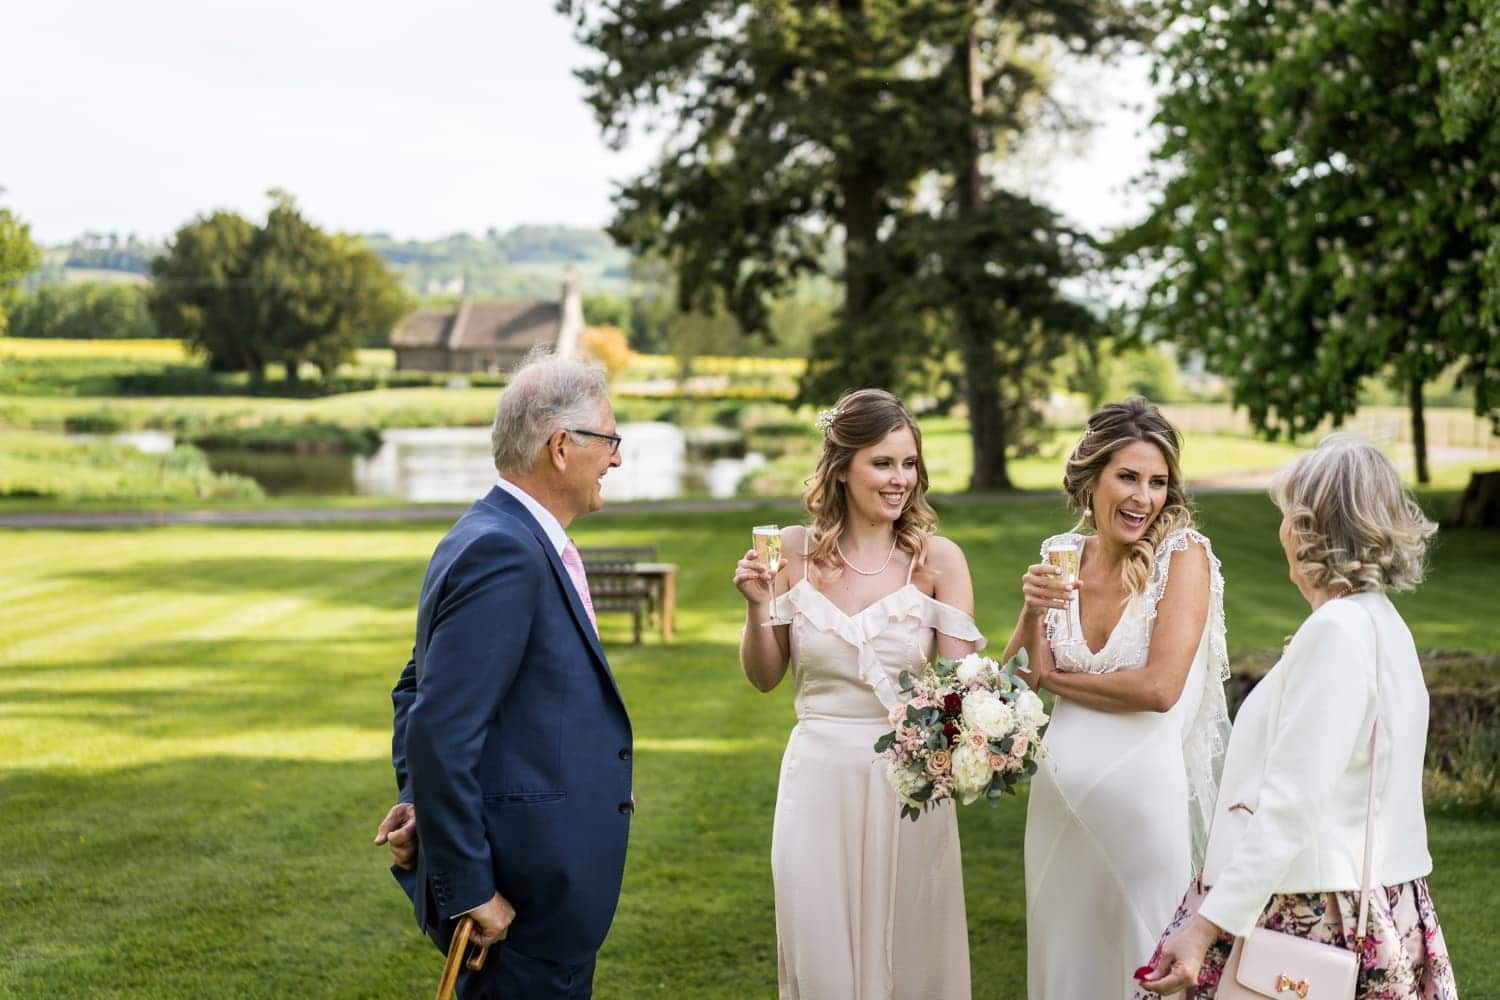 Wedding day at Llansantffraed Court, Monmouthshire in South Wales